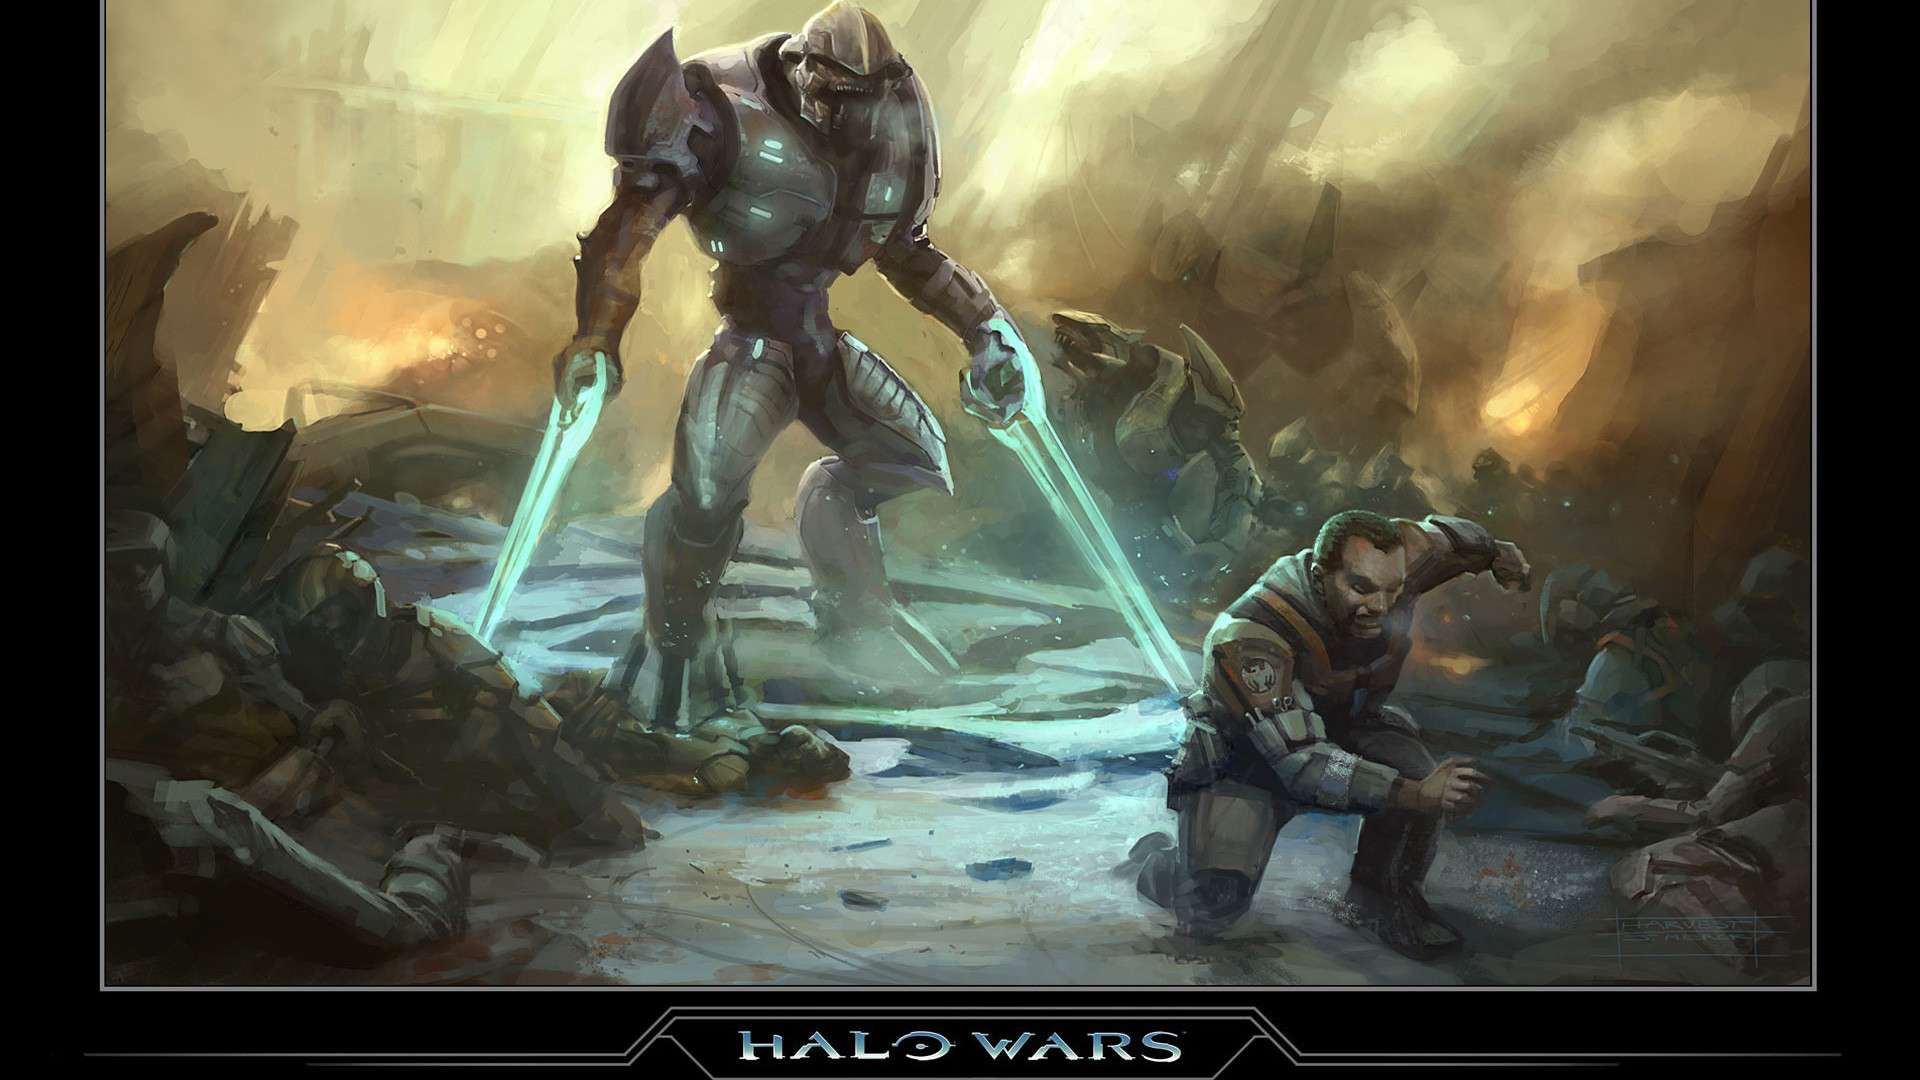 Res: 1920x1080, Wallpaper #11 Wallpaper from Halo Wars